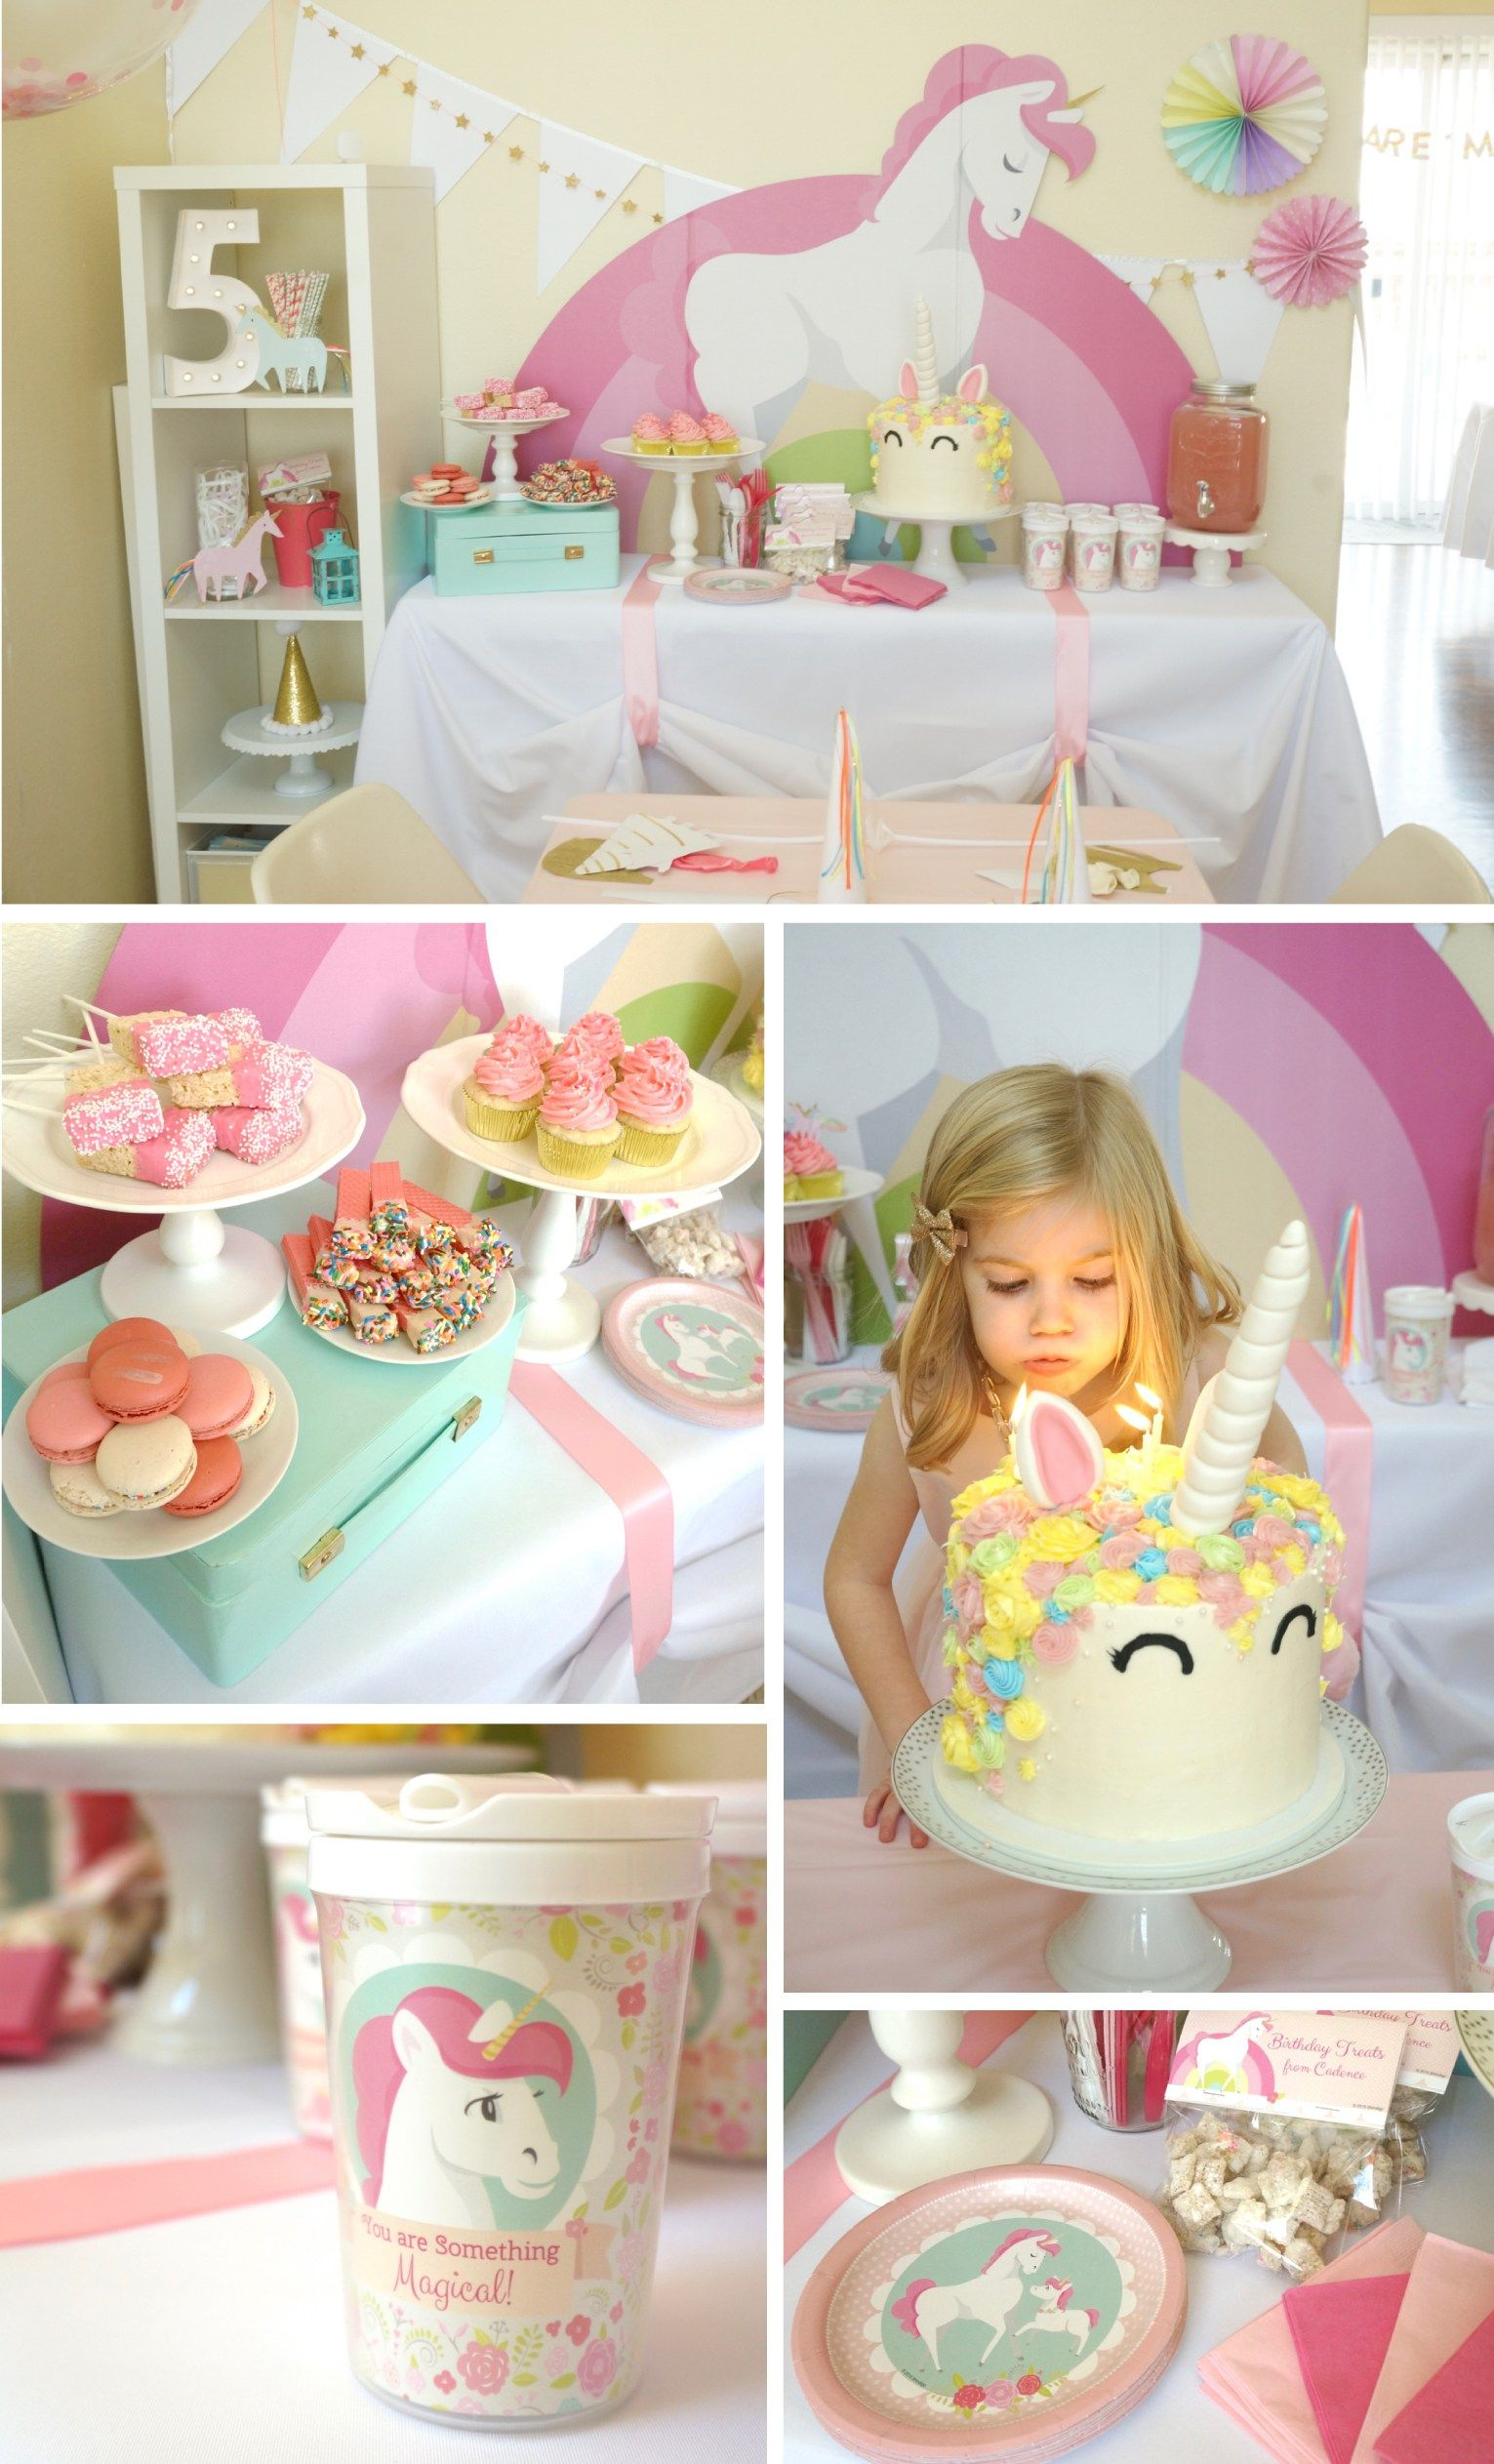 5th birthday themes ; 43e274dd9f40b62829e97ff1788e4e27